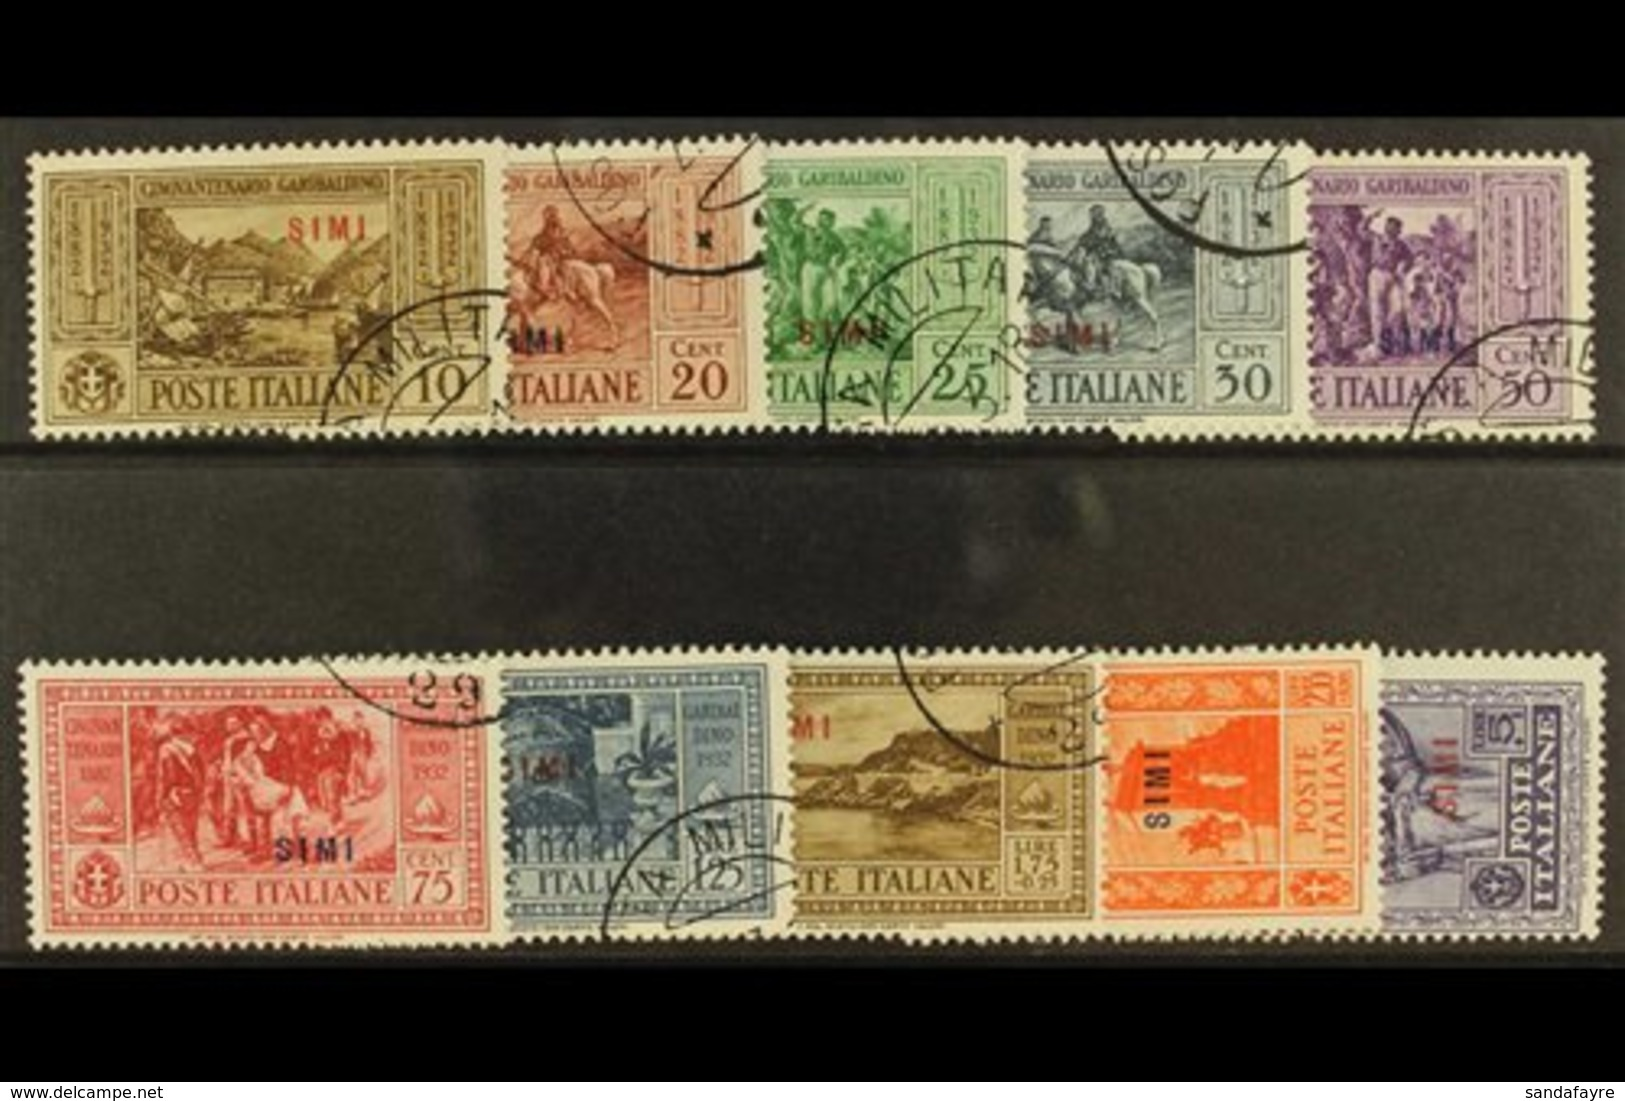 DODECANESE ISLANDS (SIMI) 1932 Garibaldi Complete Overprinted Set, SG 89/98 Or Sassone S. 81, Very Fine Used. (10 Stamps - Italy